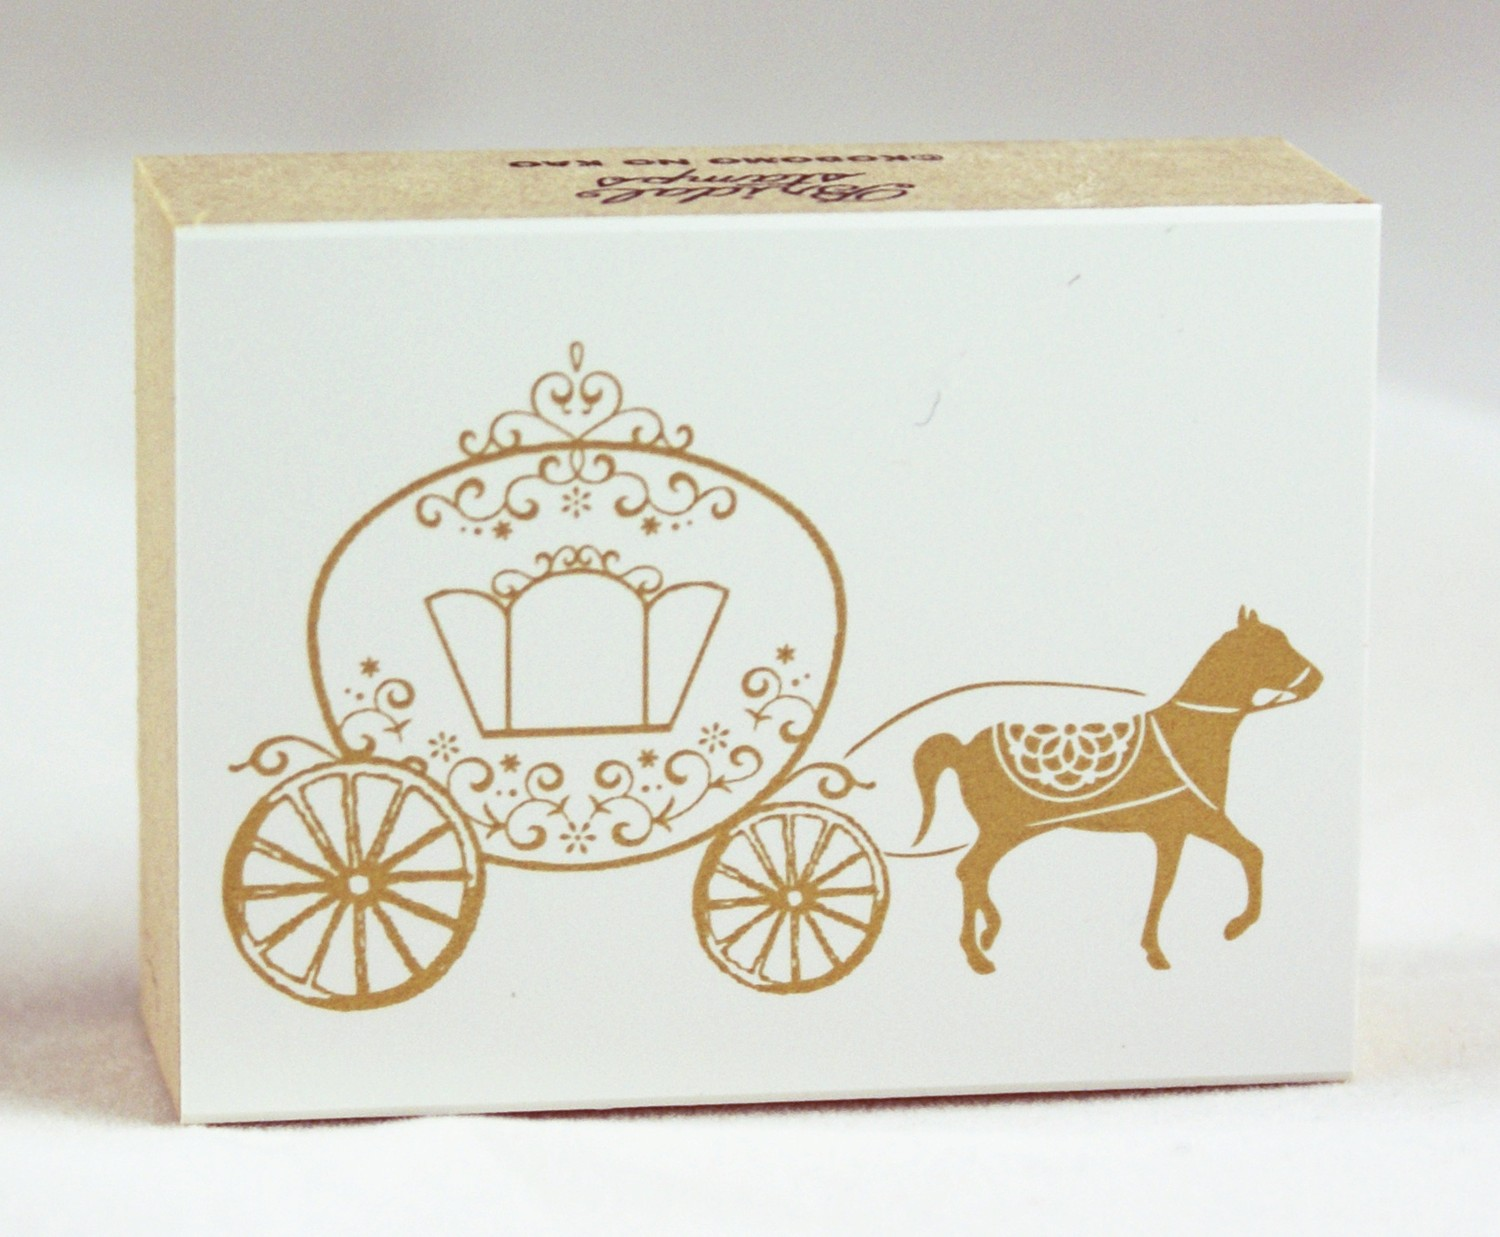 1500x1237 Horse Drawn Cinderella Carriage Japanese Wood Block Rubber Stamp